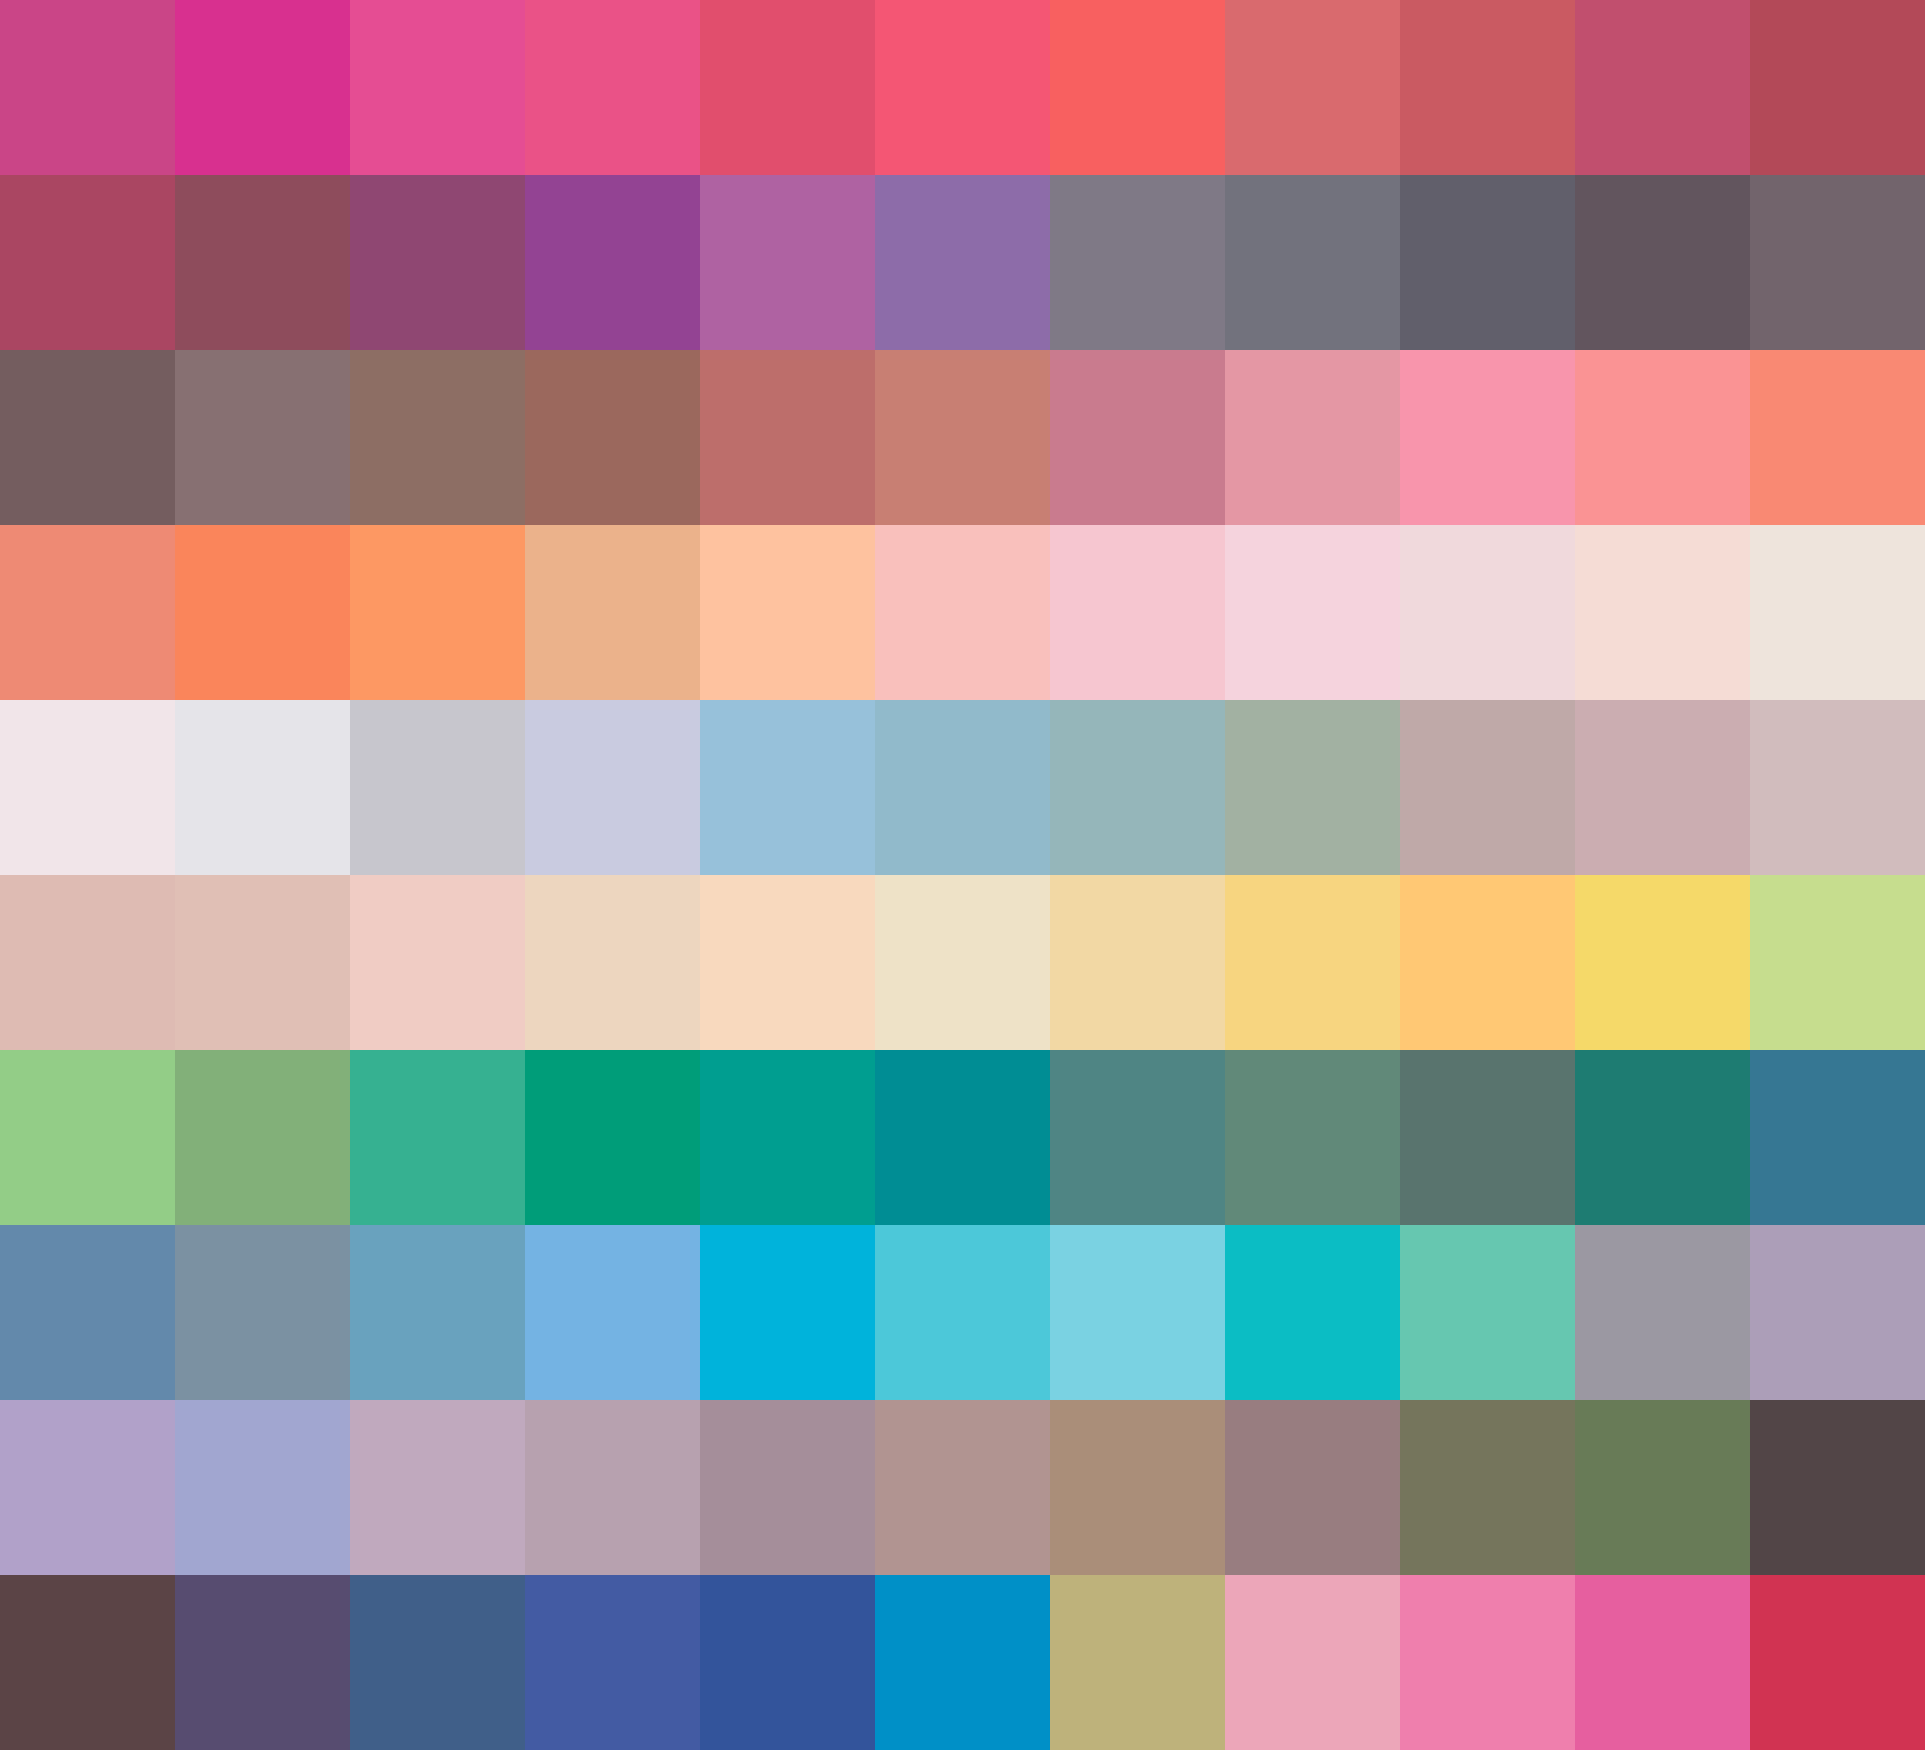 marker palette sorted by nearest next colro in CIECAM02 space